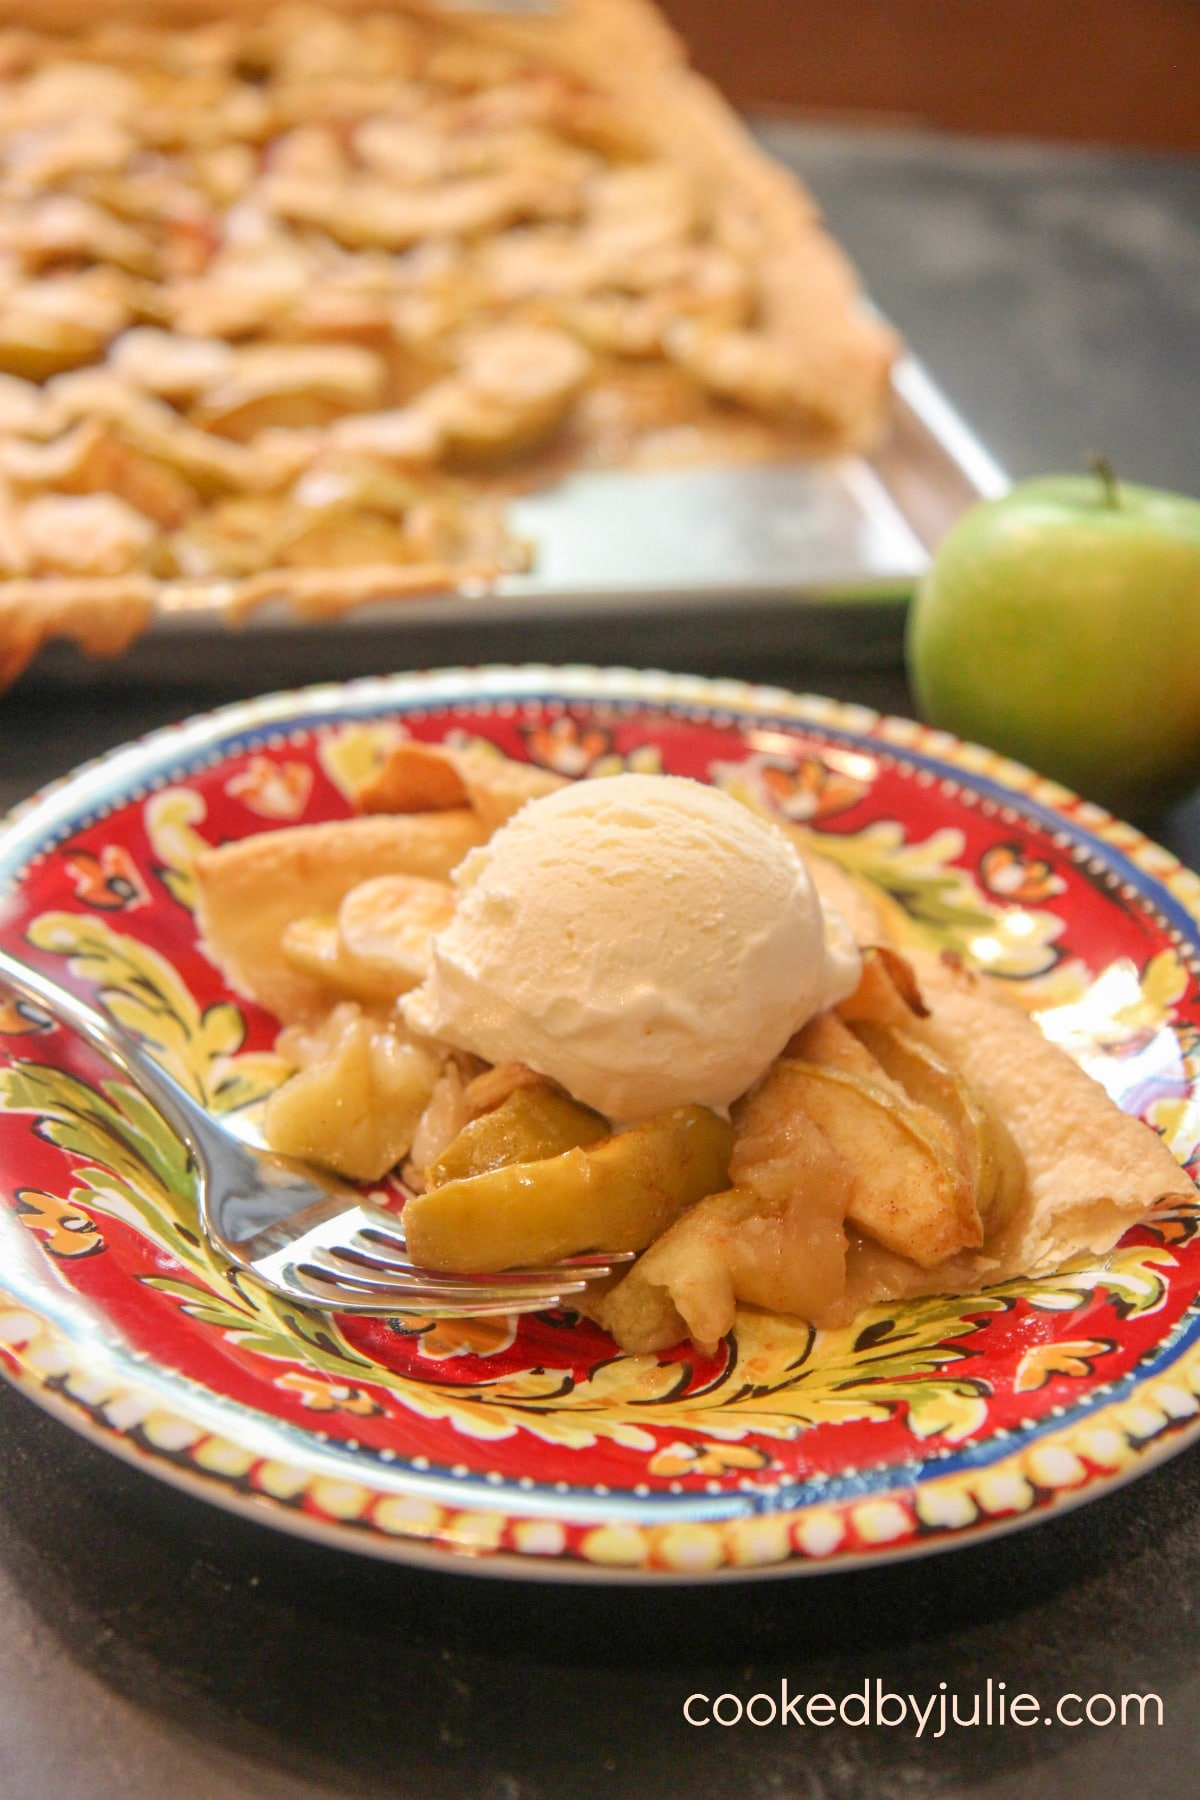 slice of apple pie a la mode